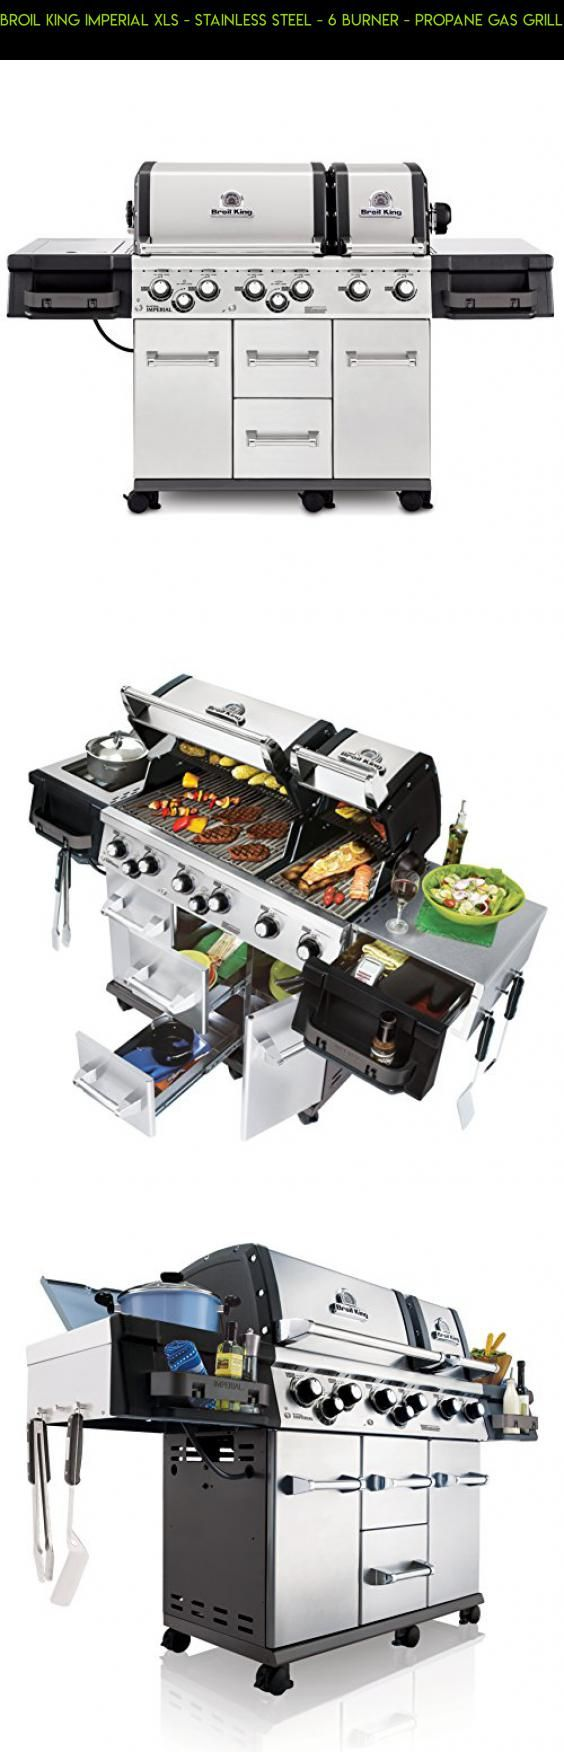 Broil King Imperial XLS - Stainless Steel - 6 Burner - Propane Gas Grill #drone #grills #tech #racing #parts #gadgets #camera #burner #products #technology #6 #kit #shopping #plans #fpv